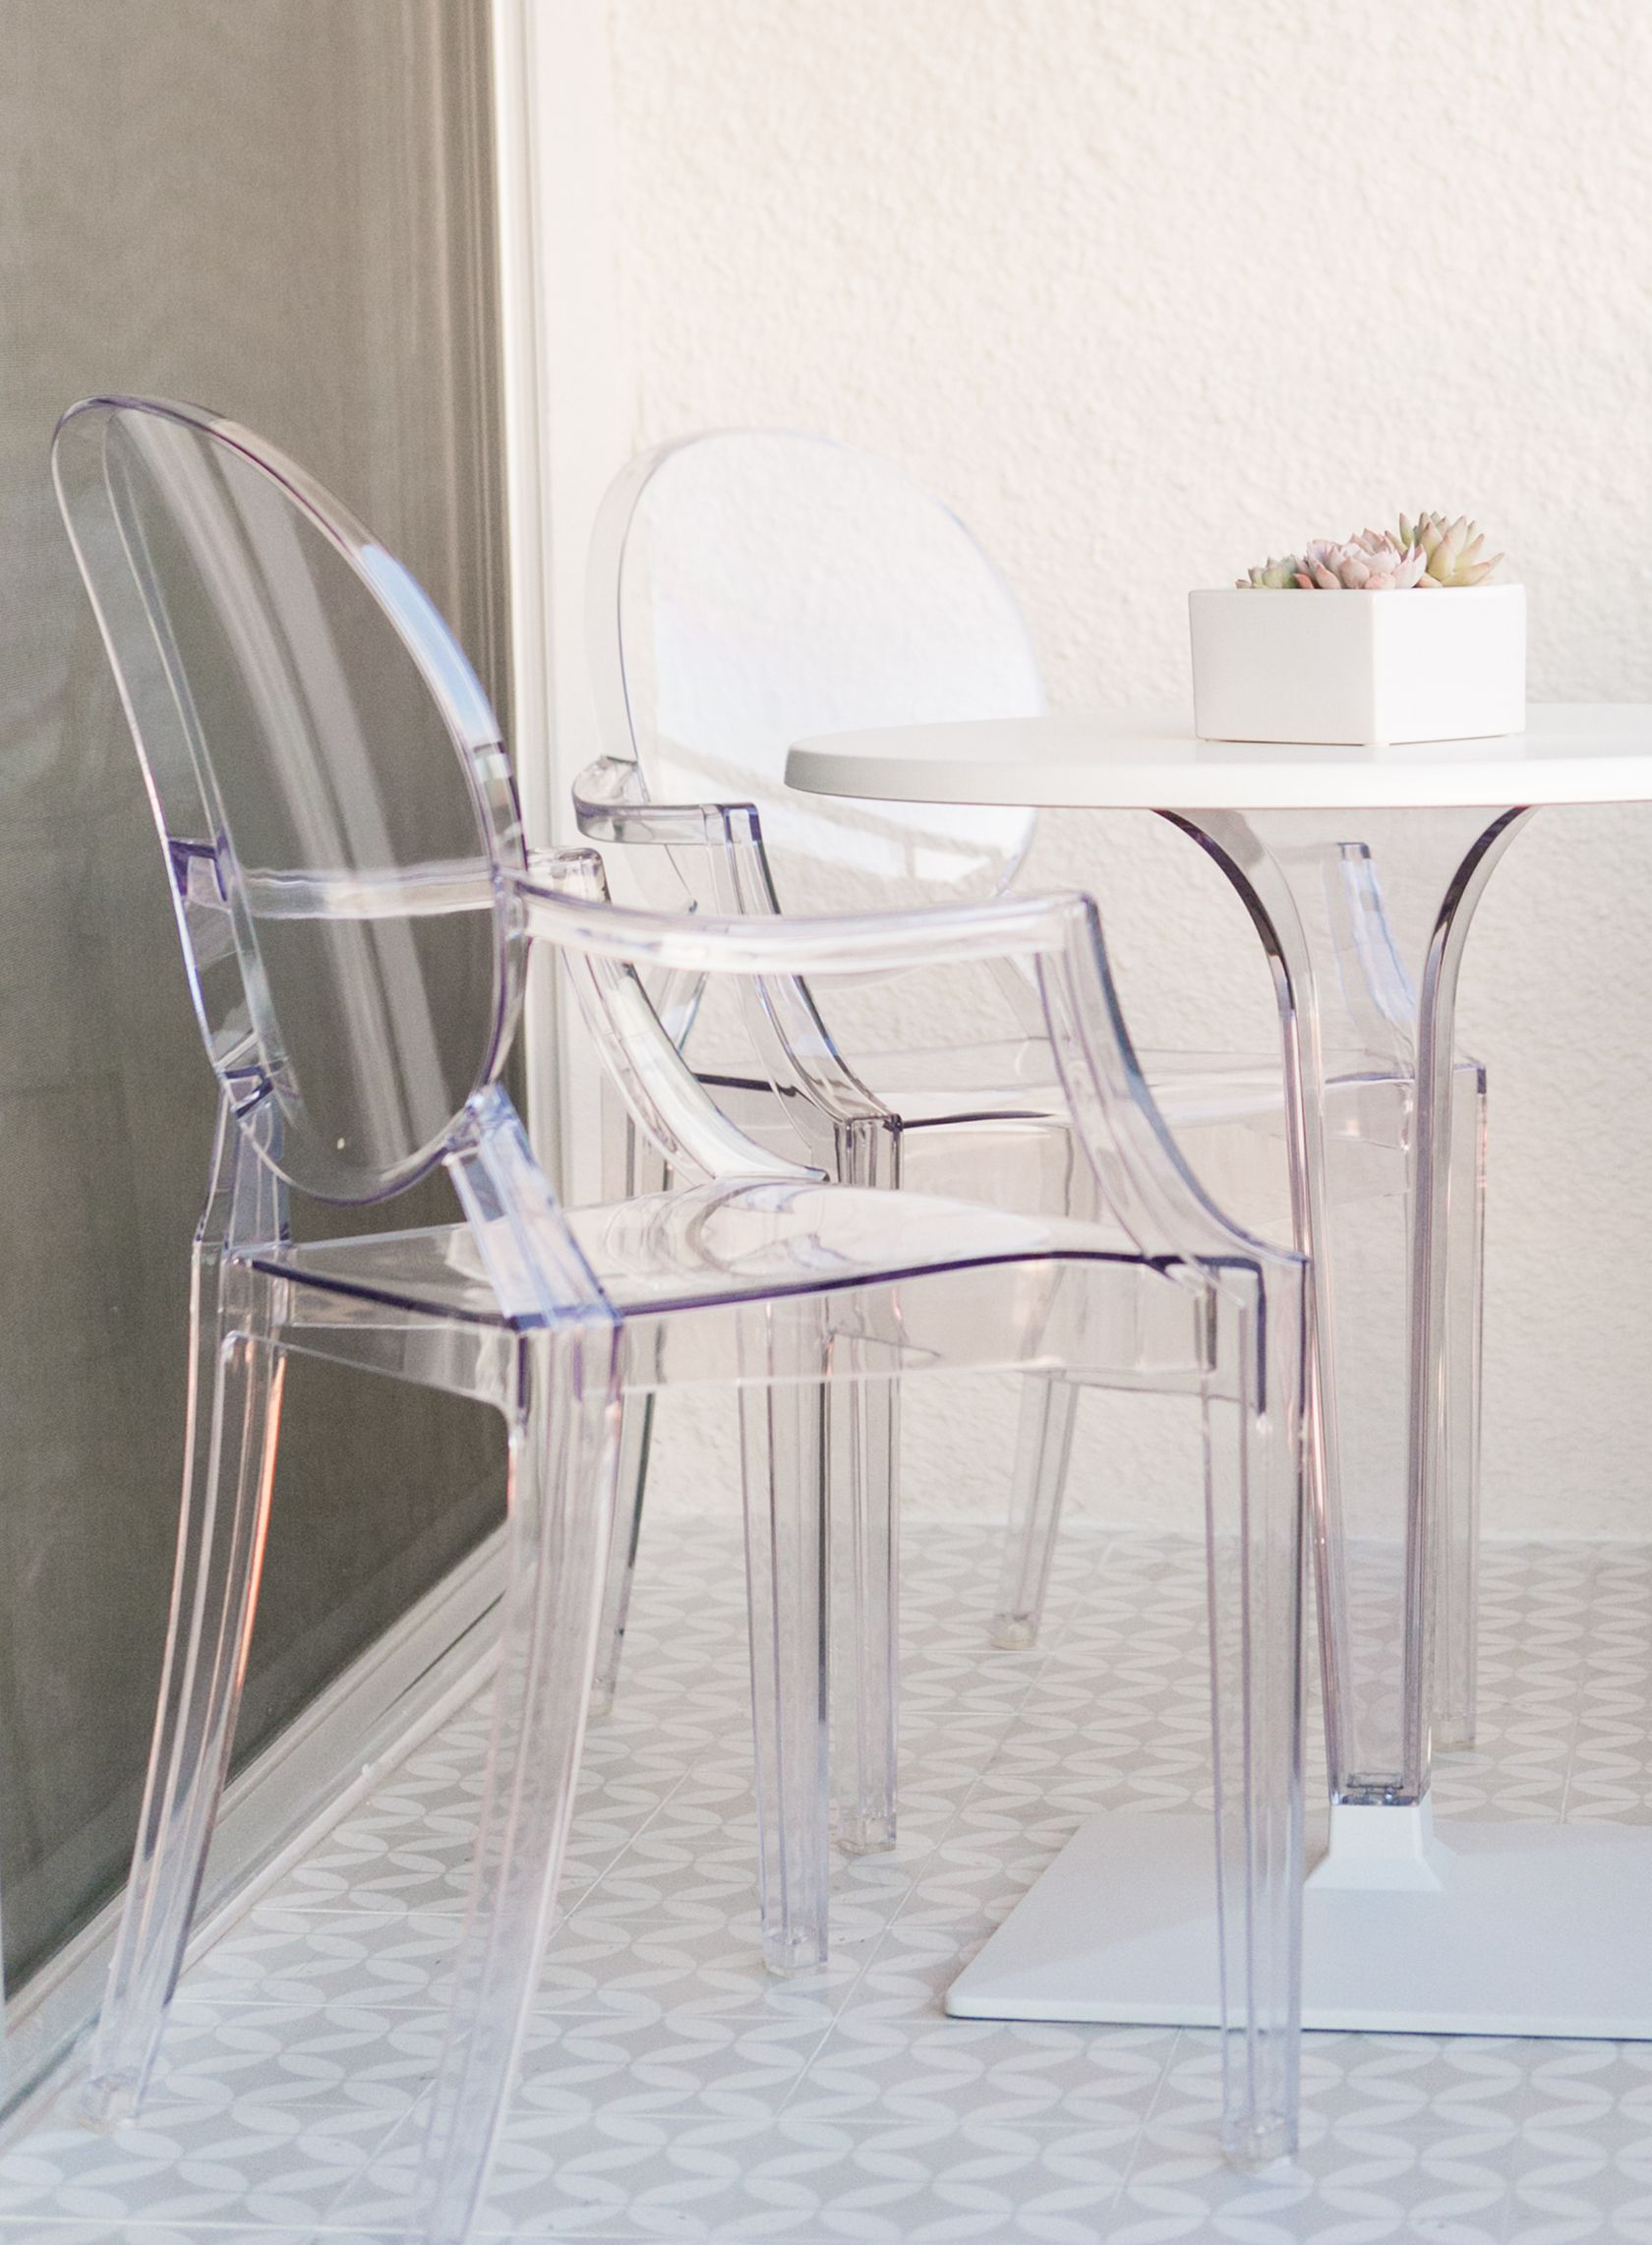 Sydne Style Shows Glam Outdoor Furniture With Acrylic Chairs Home Decor Homedecor Interiors Interiordesign Lucite Tiles Outdoorfurniture